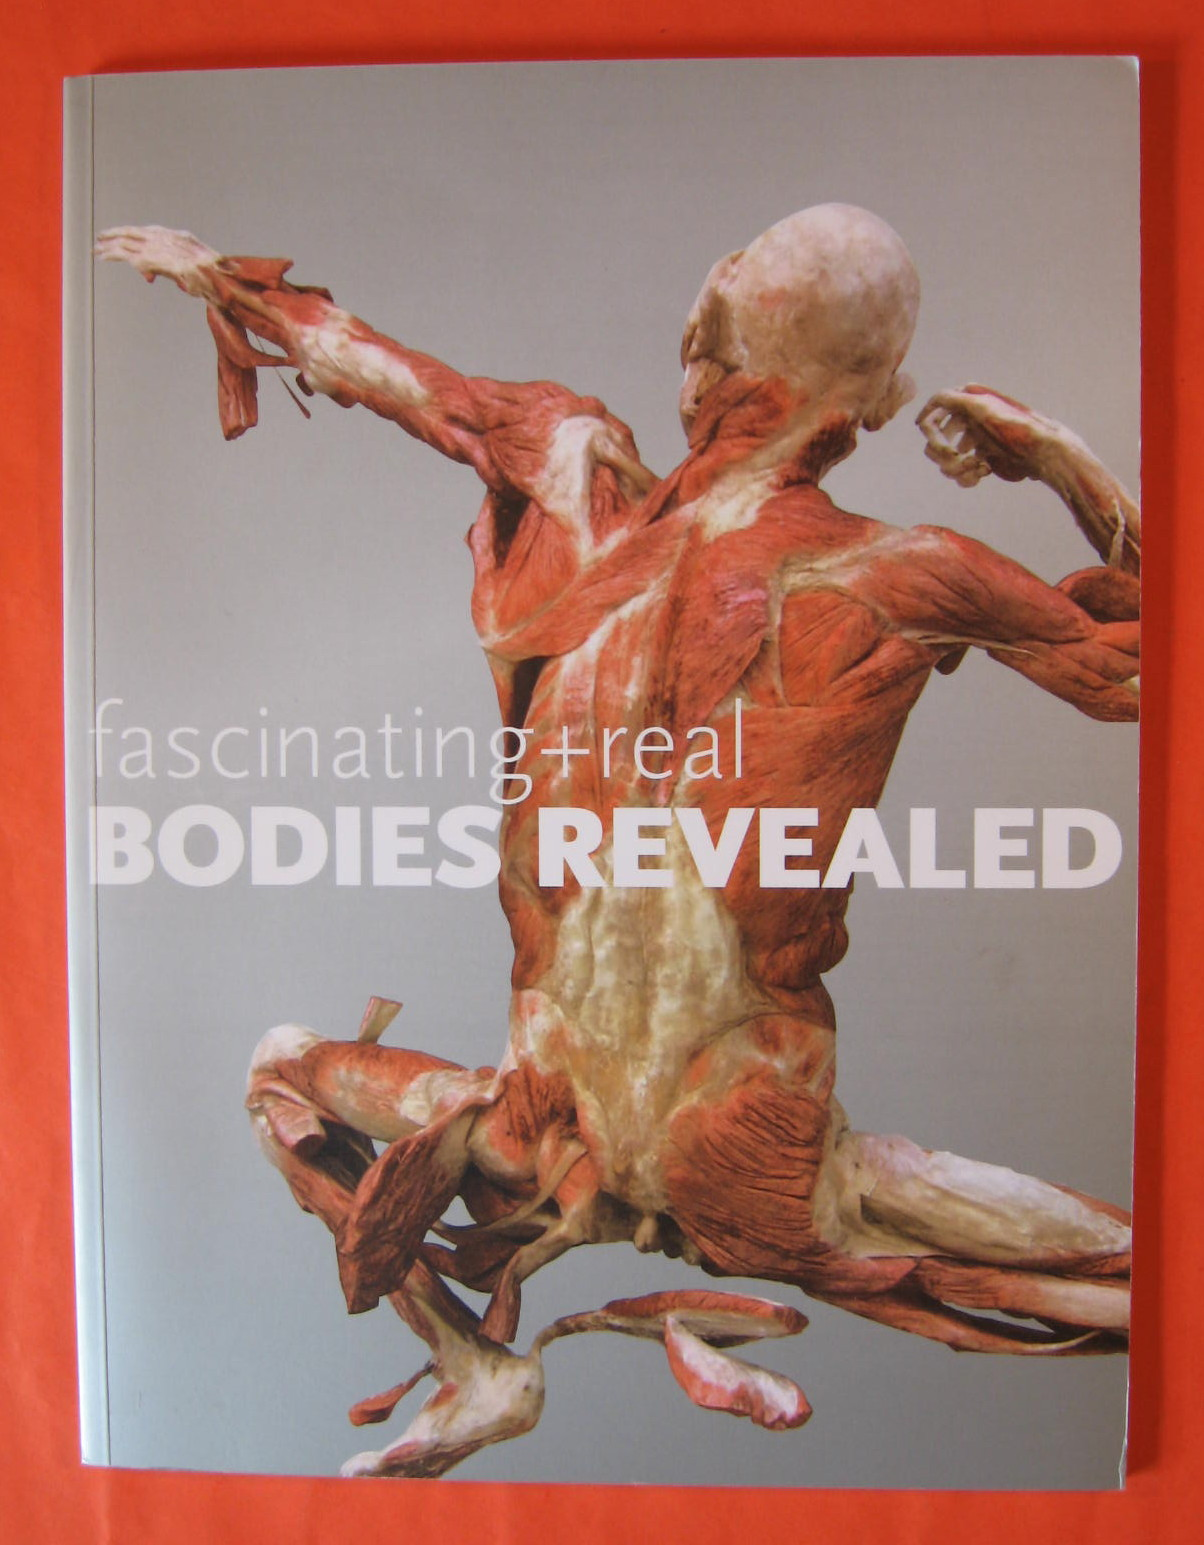 Image for Fascinating + Real Bodies Revealed